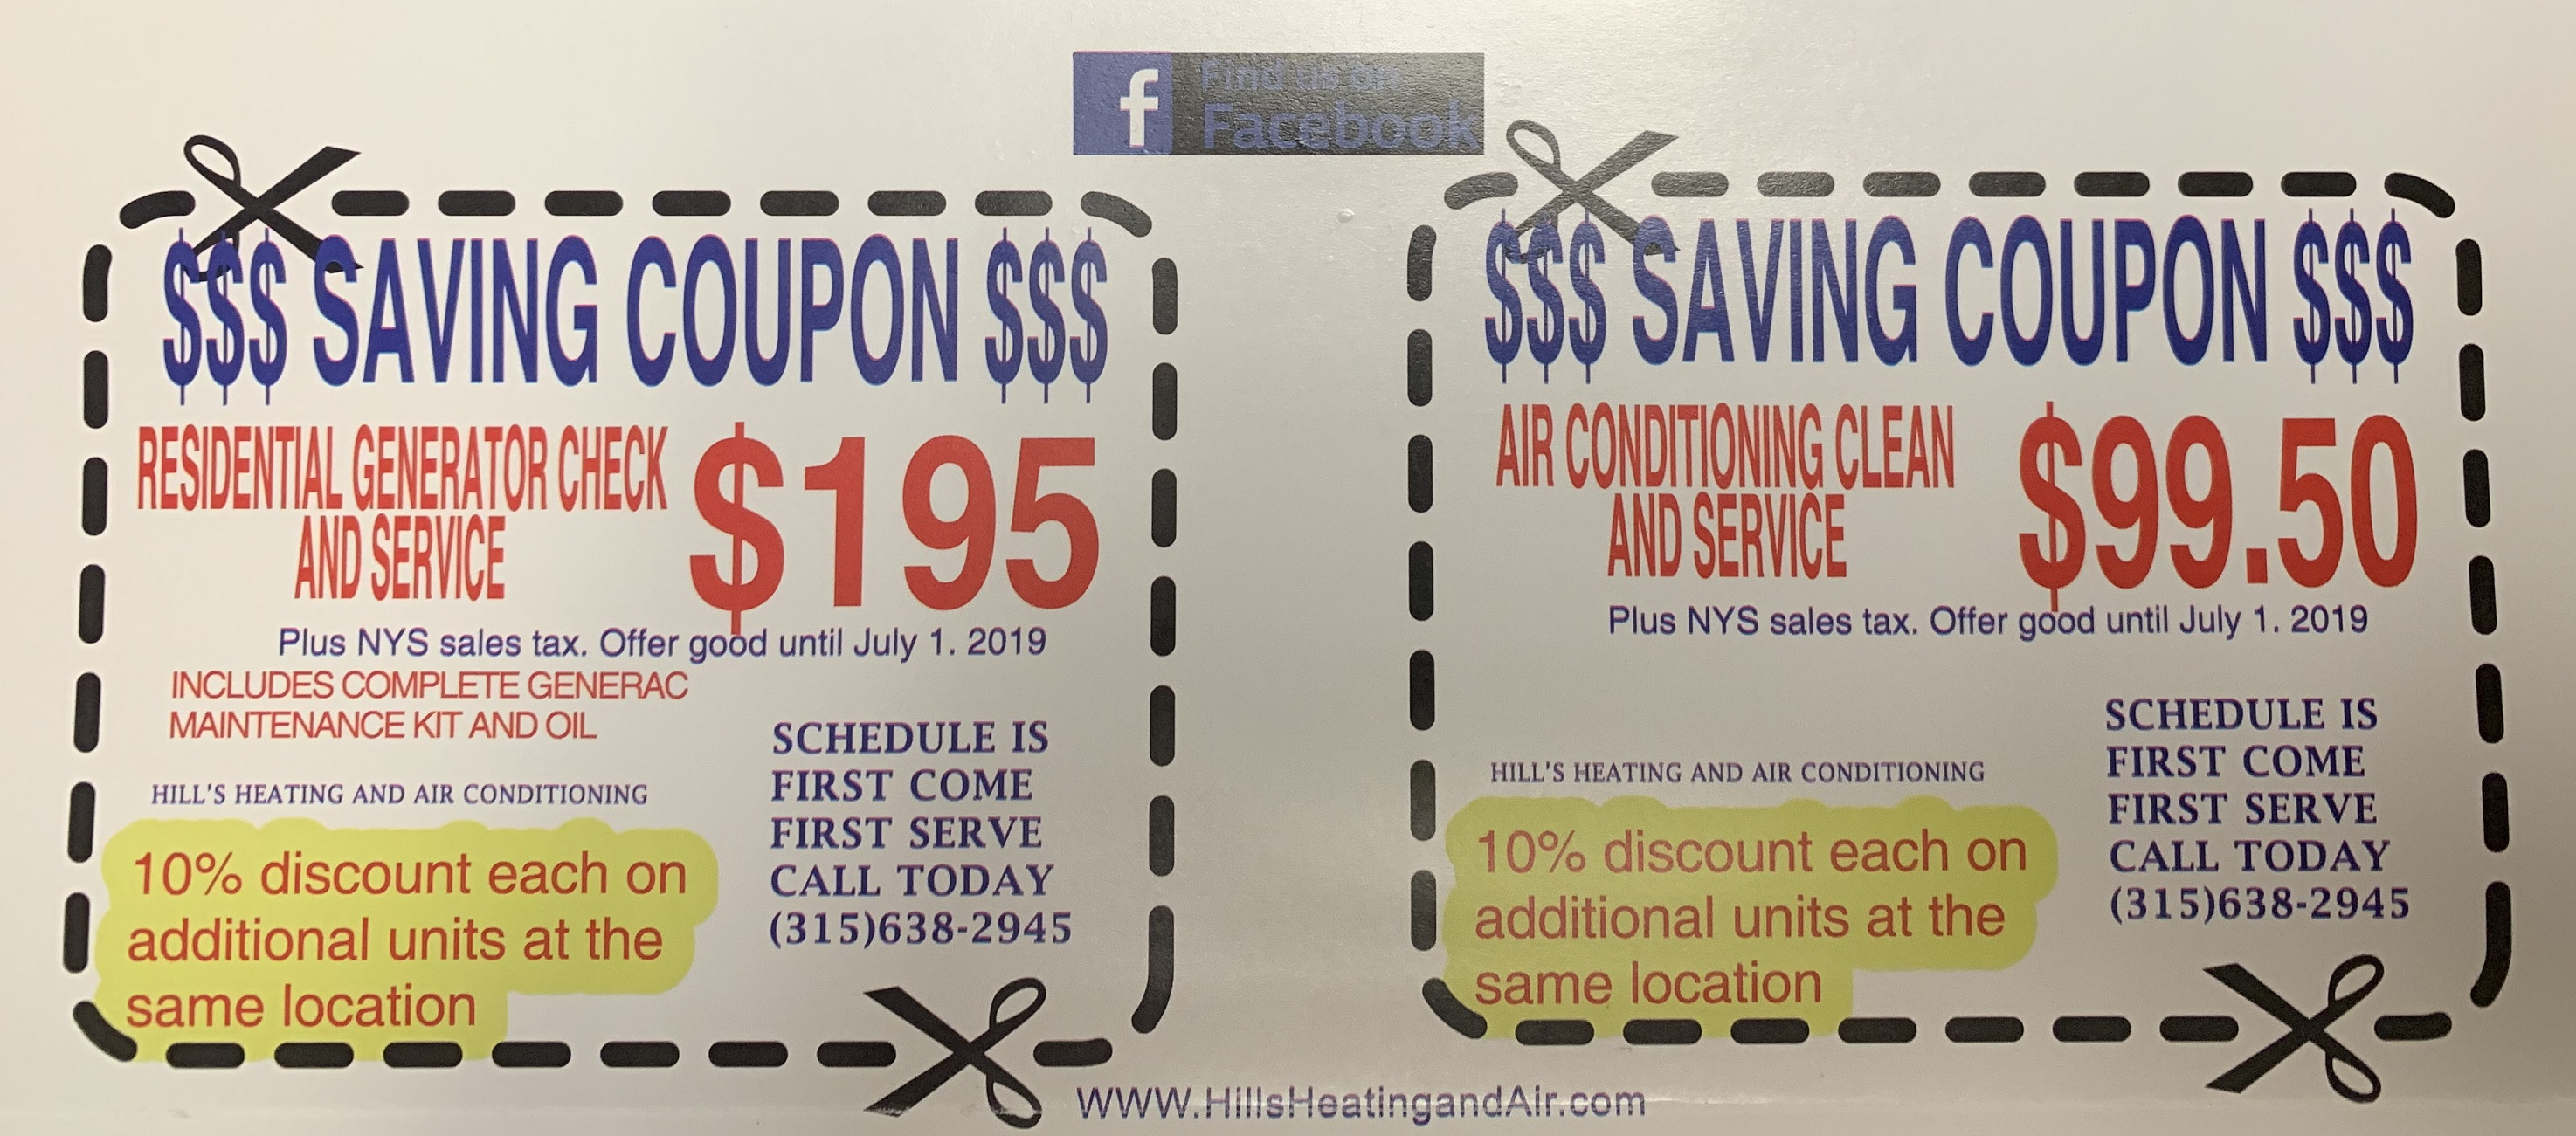 Hills Heating and Air Conditioning   Syracuse, NY